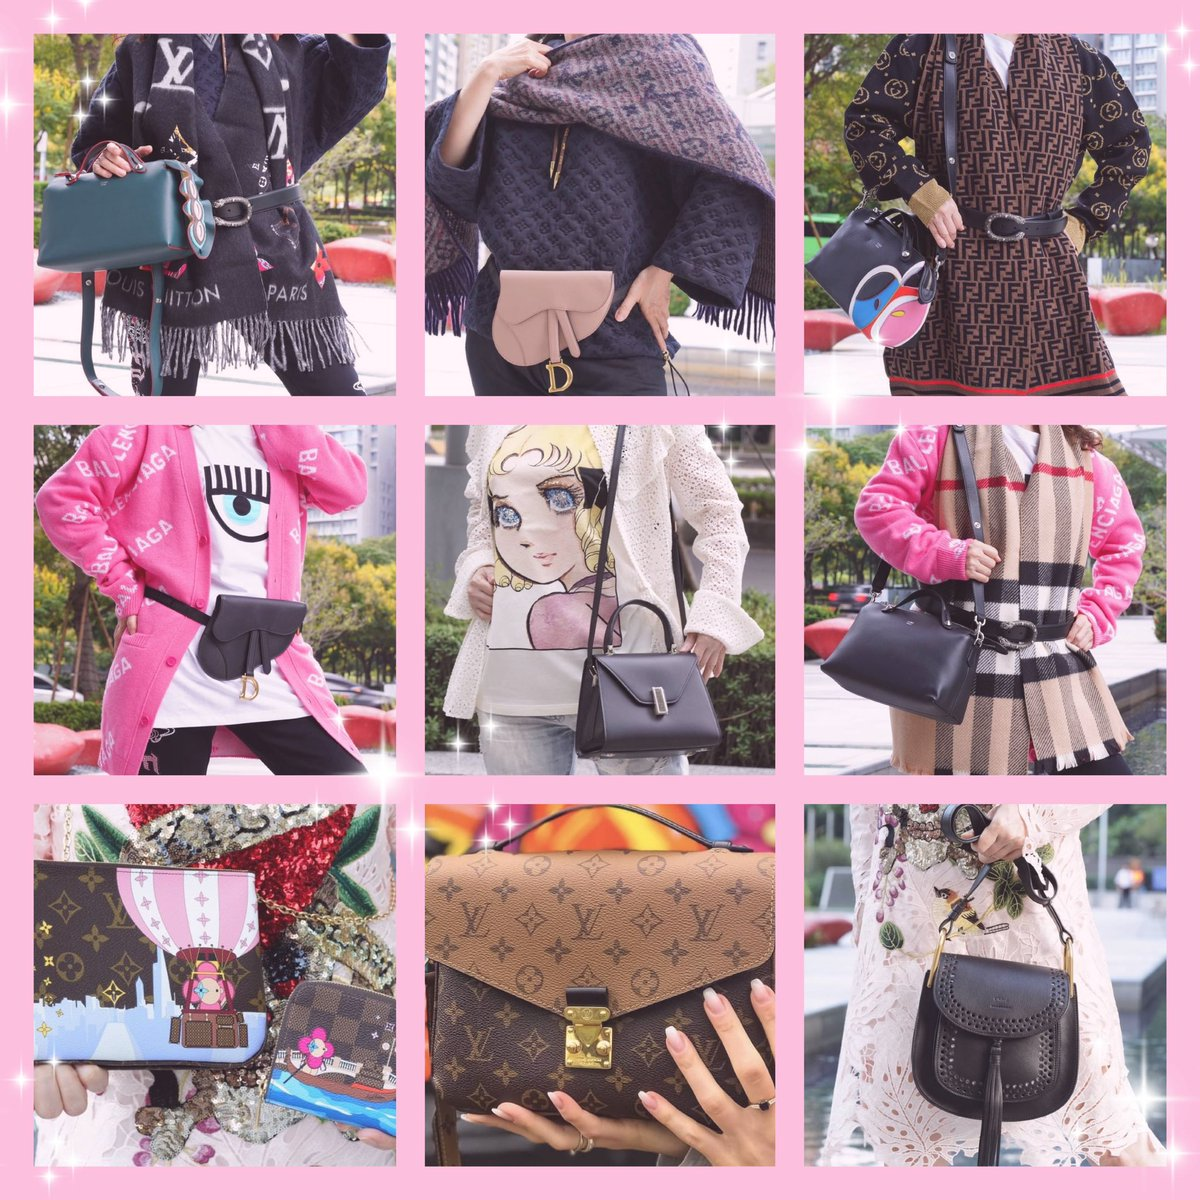 #Chloe。#LV。#Gucci。#Fendi。#VALEXTRA。#Dior。#CF 眨眼👀。 https://t.co/RJKduC2Jco